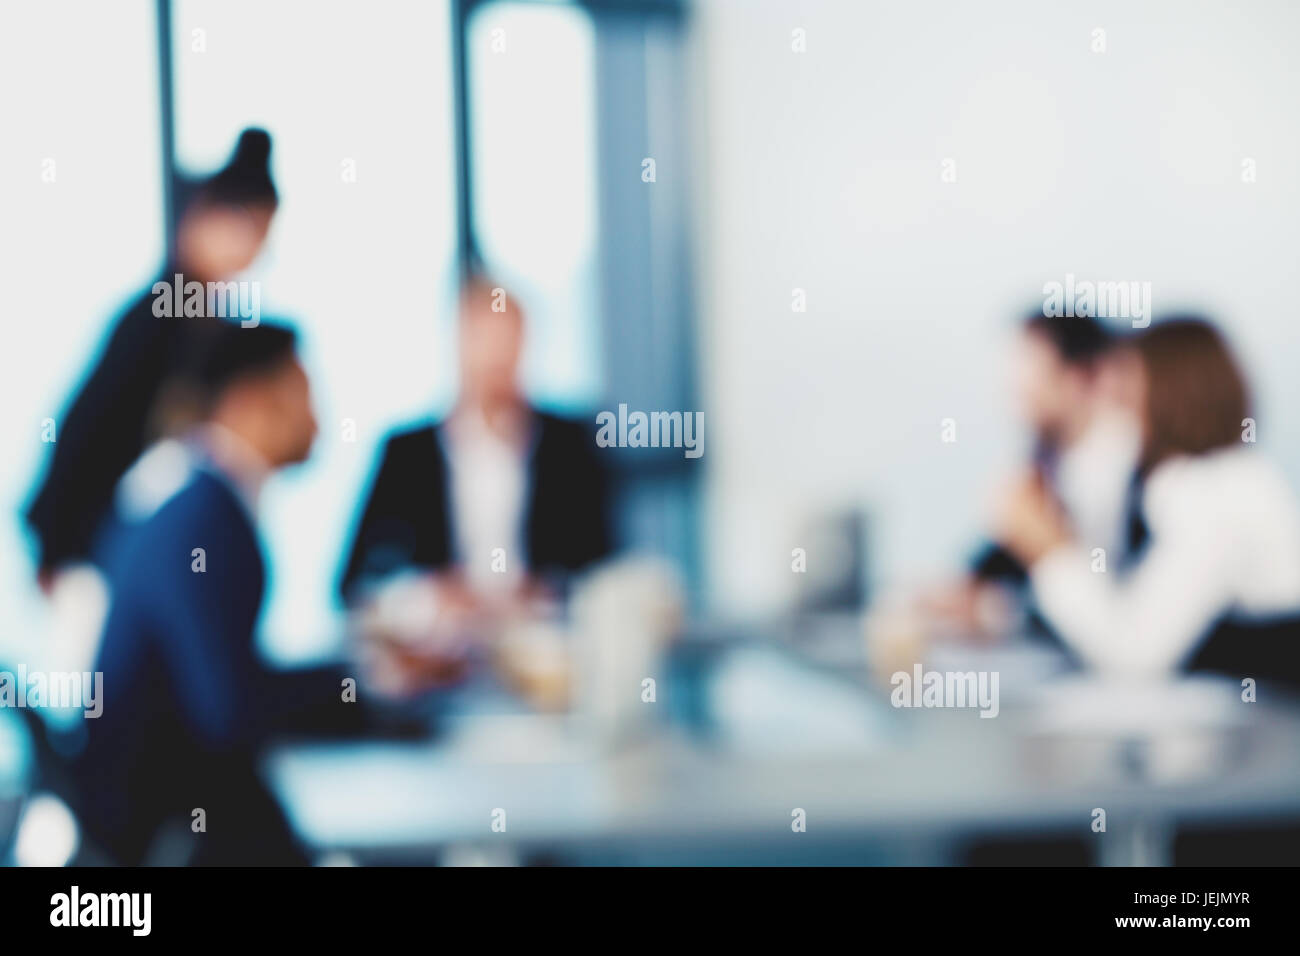 Blurred background with business people - Stock Image